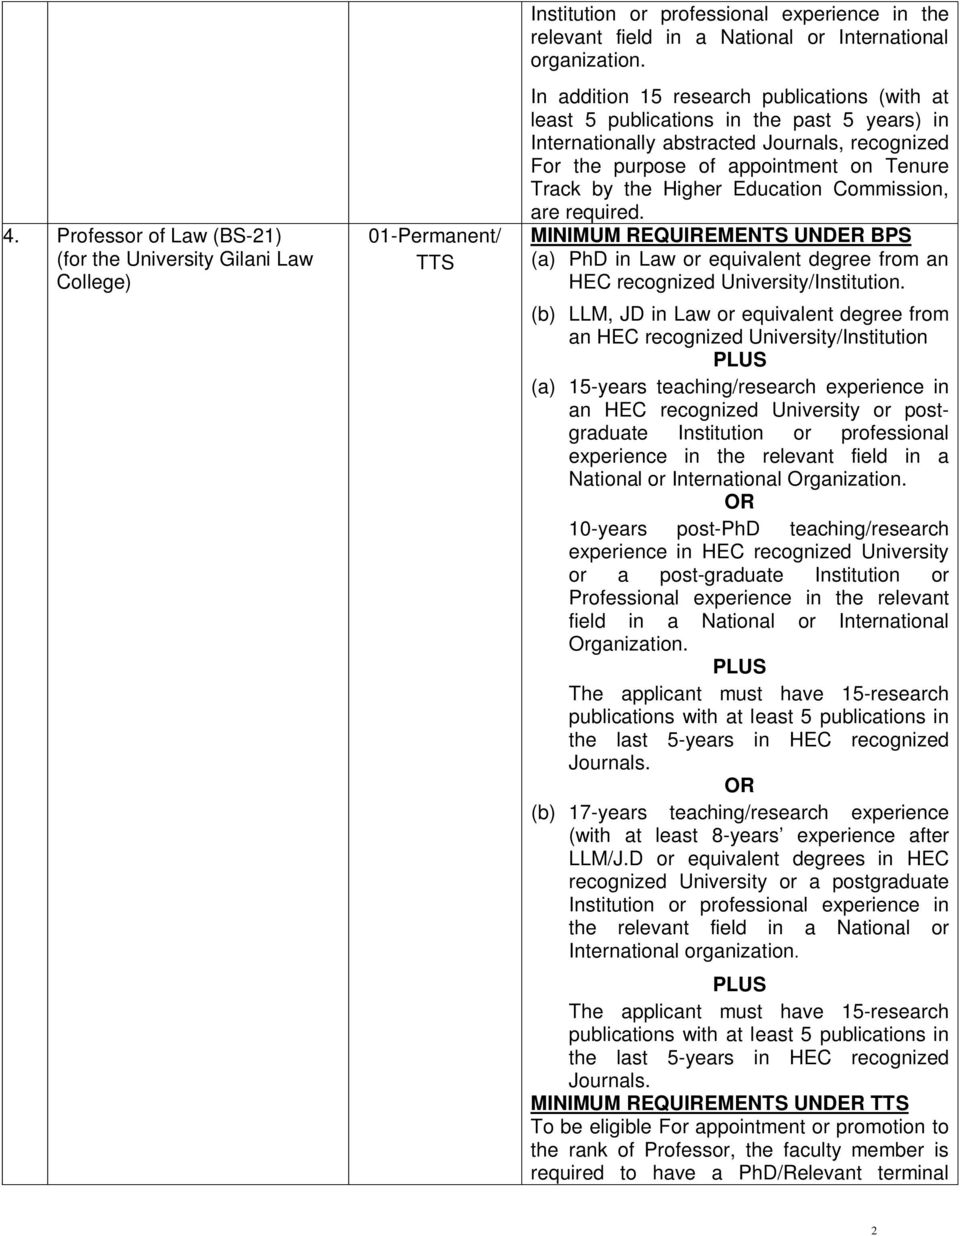 Education Commission, are required. MINIMUM REQUIREMENTS UNDER BPS (a) PhD in Law or equivalent degree from an HEC recognized University/Institution.